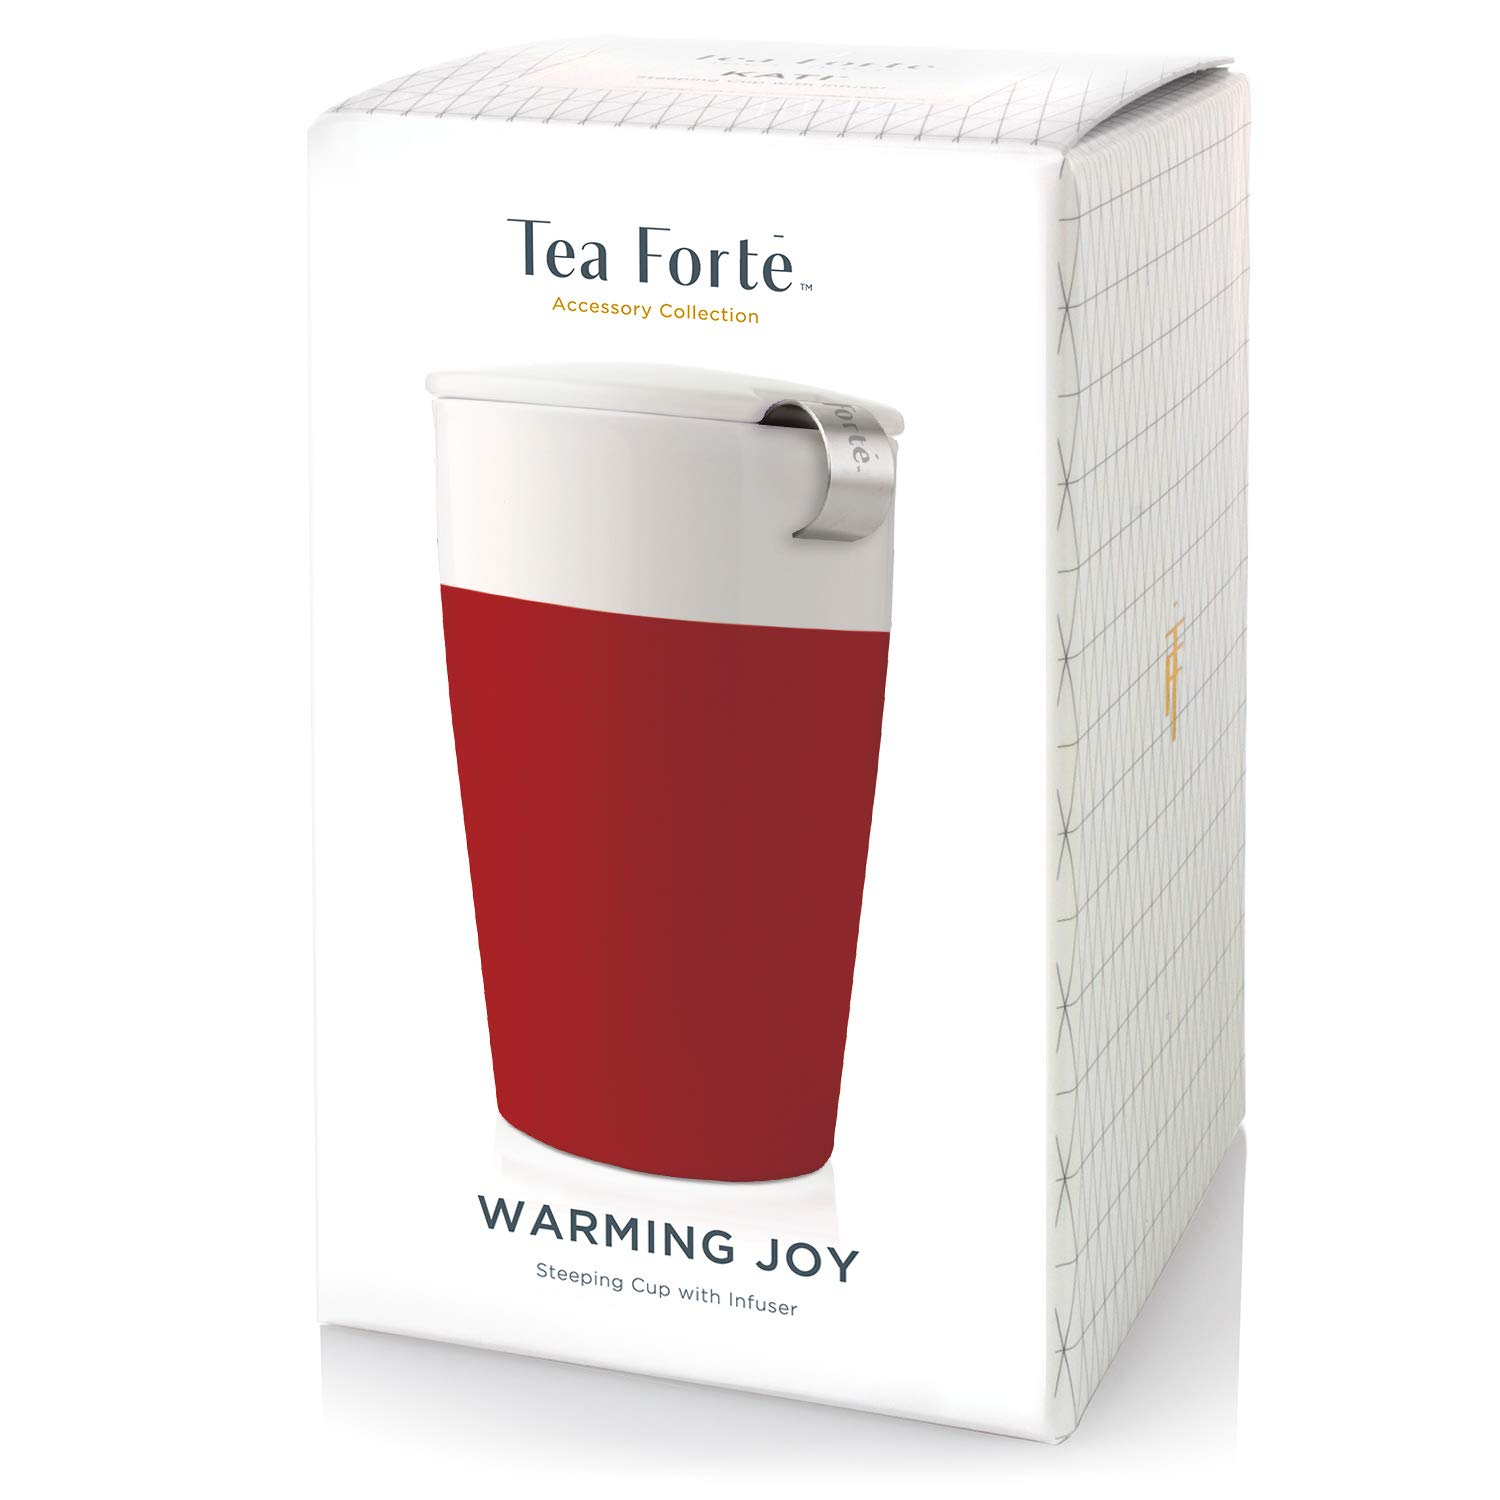 Warming Joy Tea Forte Kati Cup Ceramic Tea Infuser Cup with Infuser Basket and Lid for Steeping